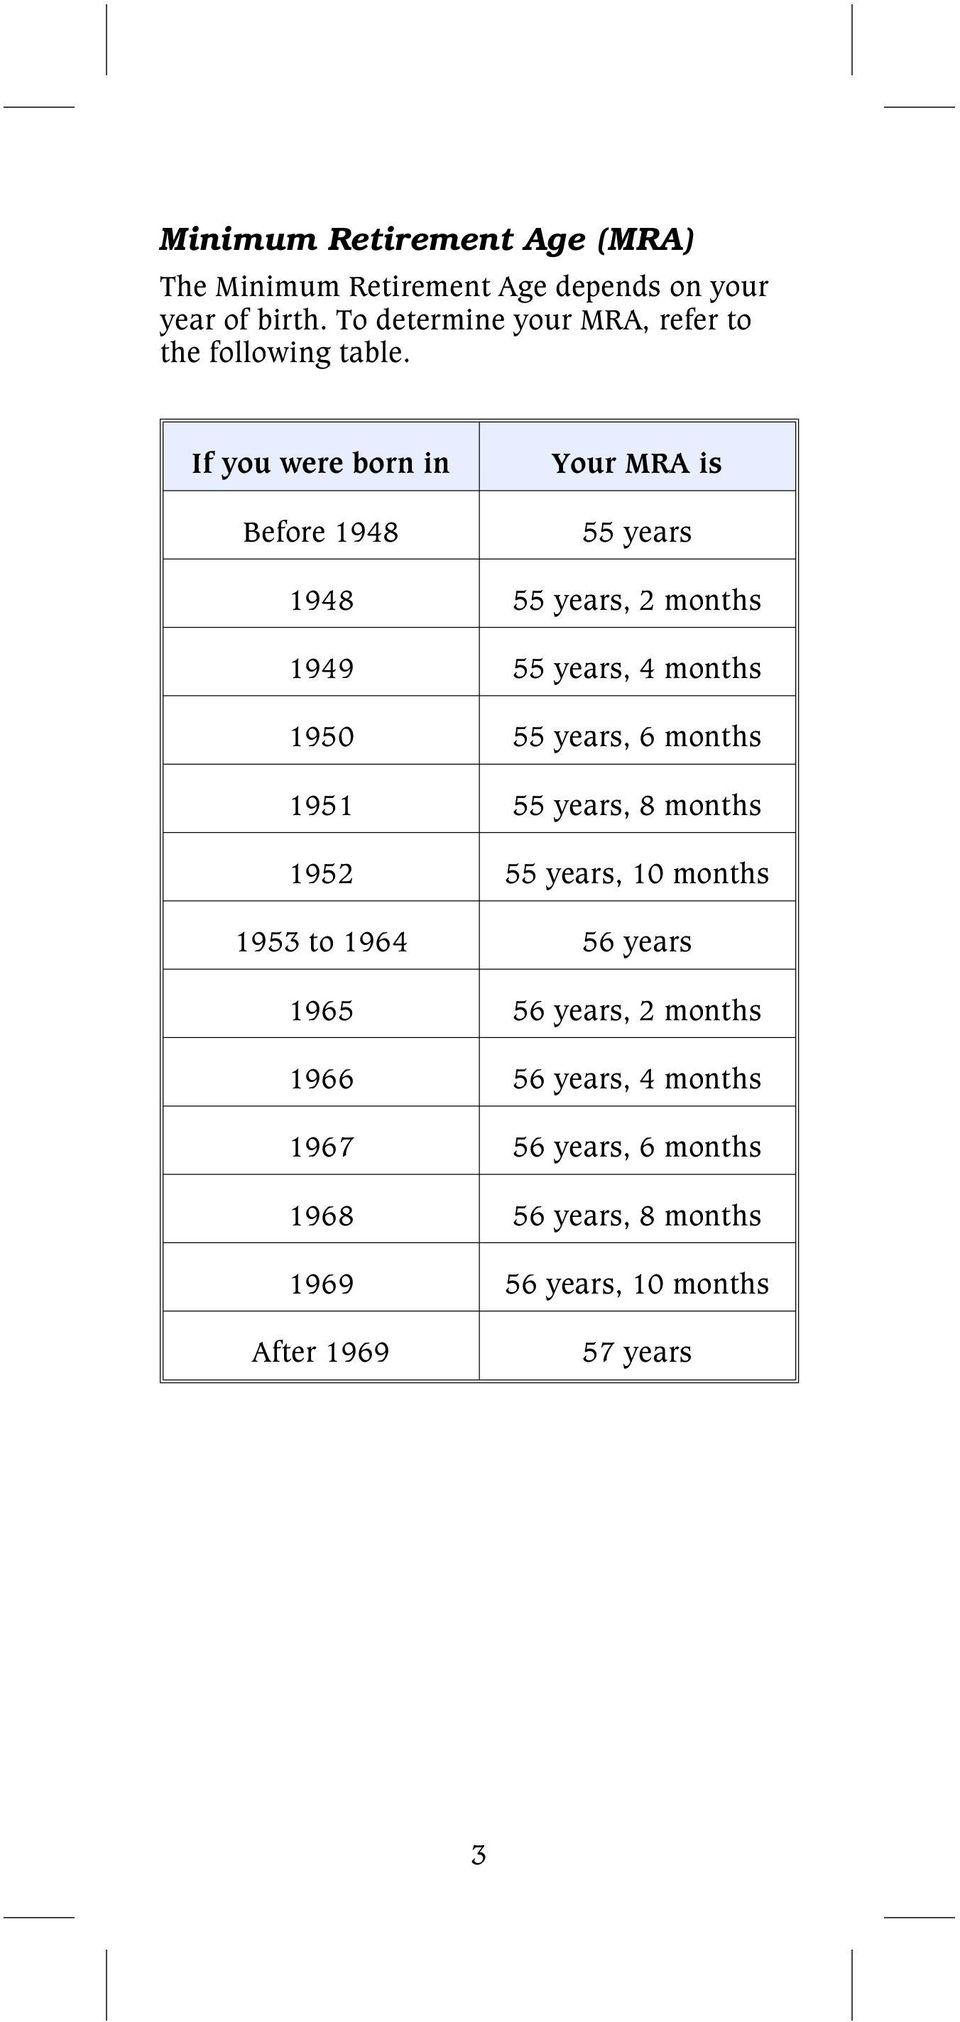 If you were born in Before 1948 Your MRA is 55 years 1948 55 years, 2 months 1949 55 years, 4 months 1950 55 years, 6